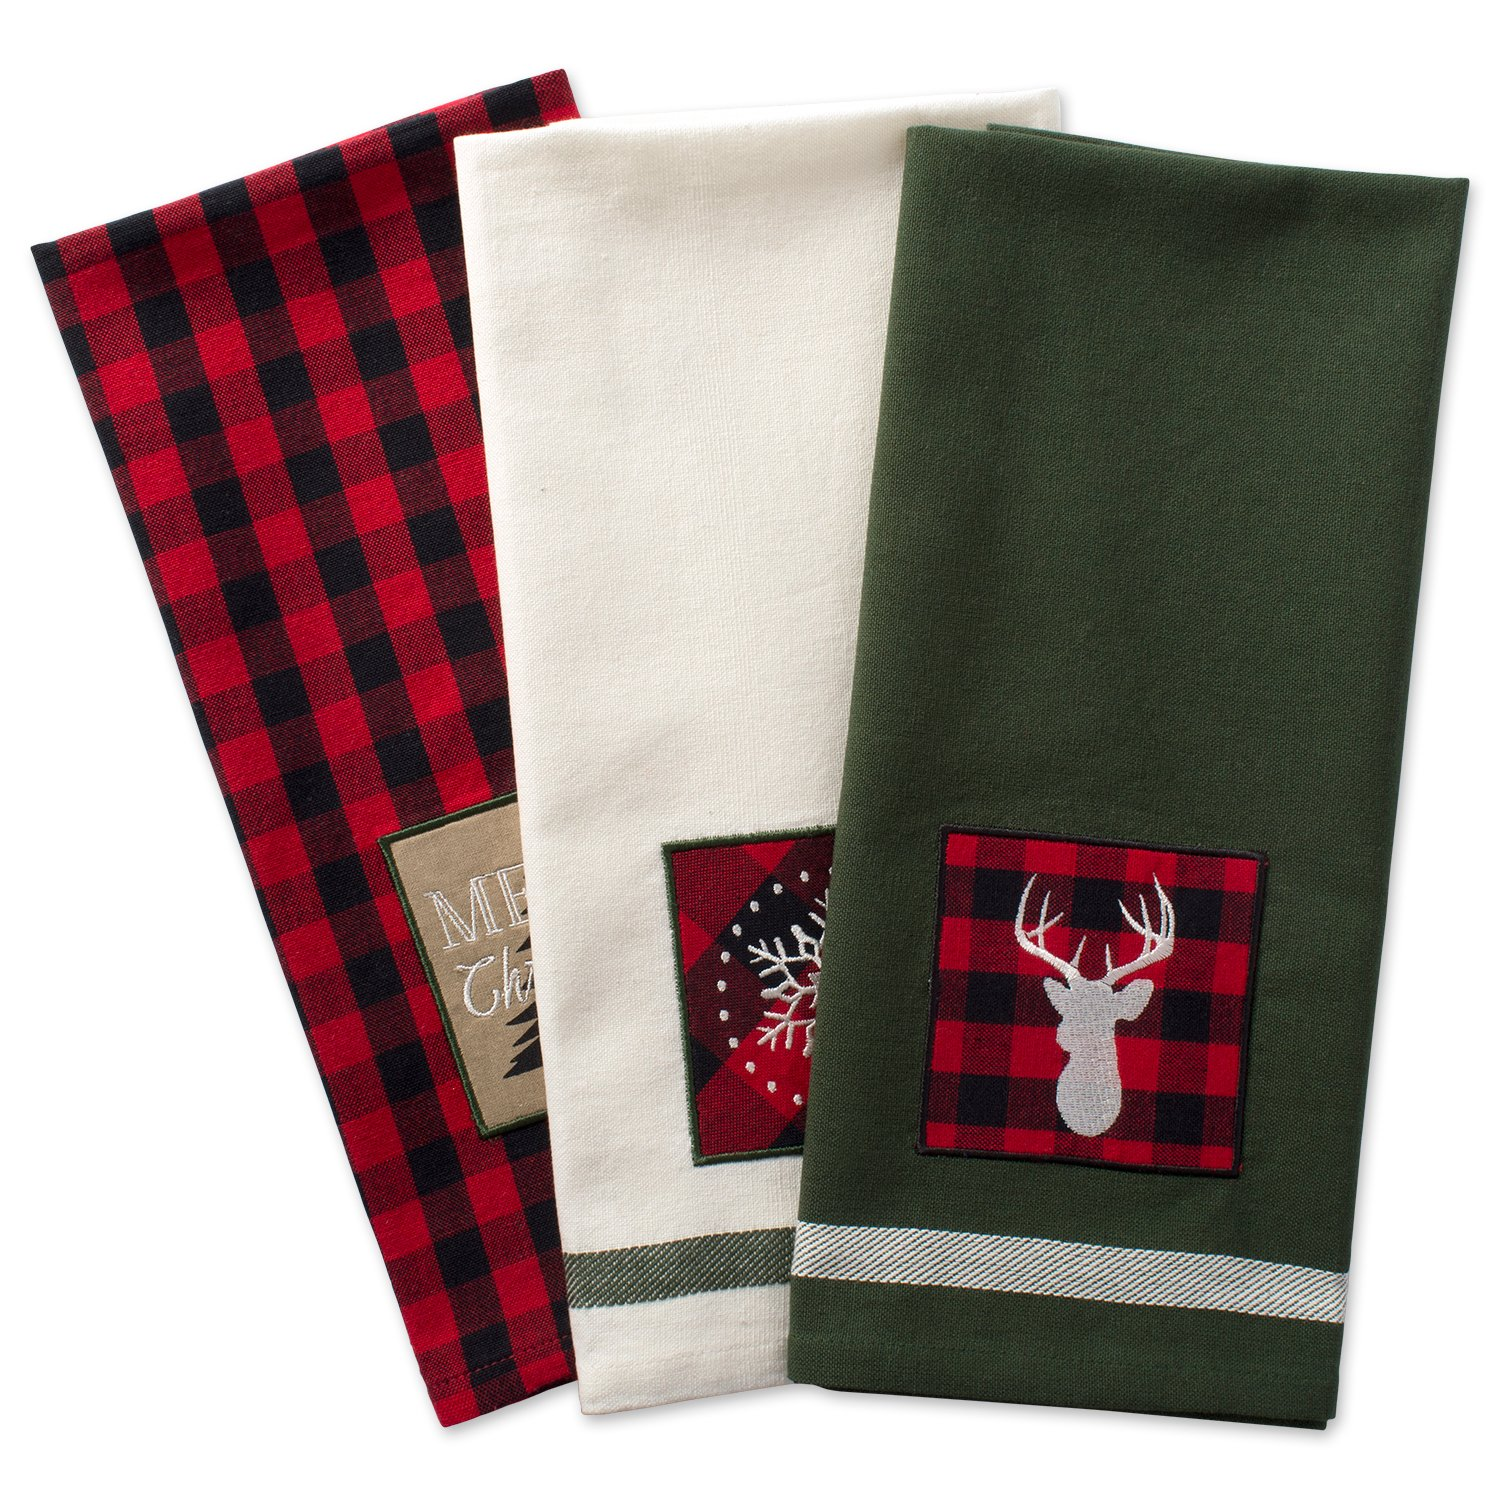 DII Cotton Christmas Holiday Dish Towels, 18x28'' Set of 3, Decorative Oversized Kitchen Towels, Perfect Home and Kitchen Gift-Christmas Fireside